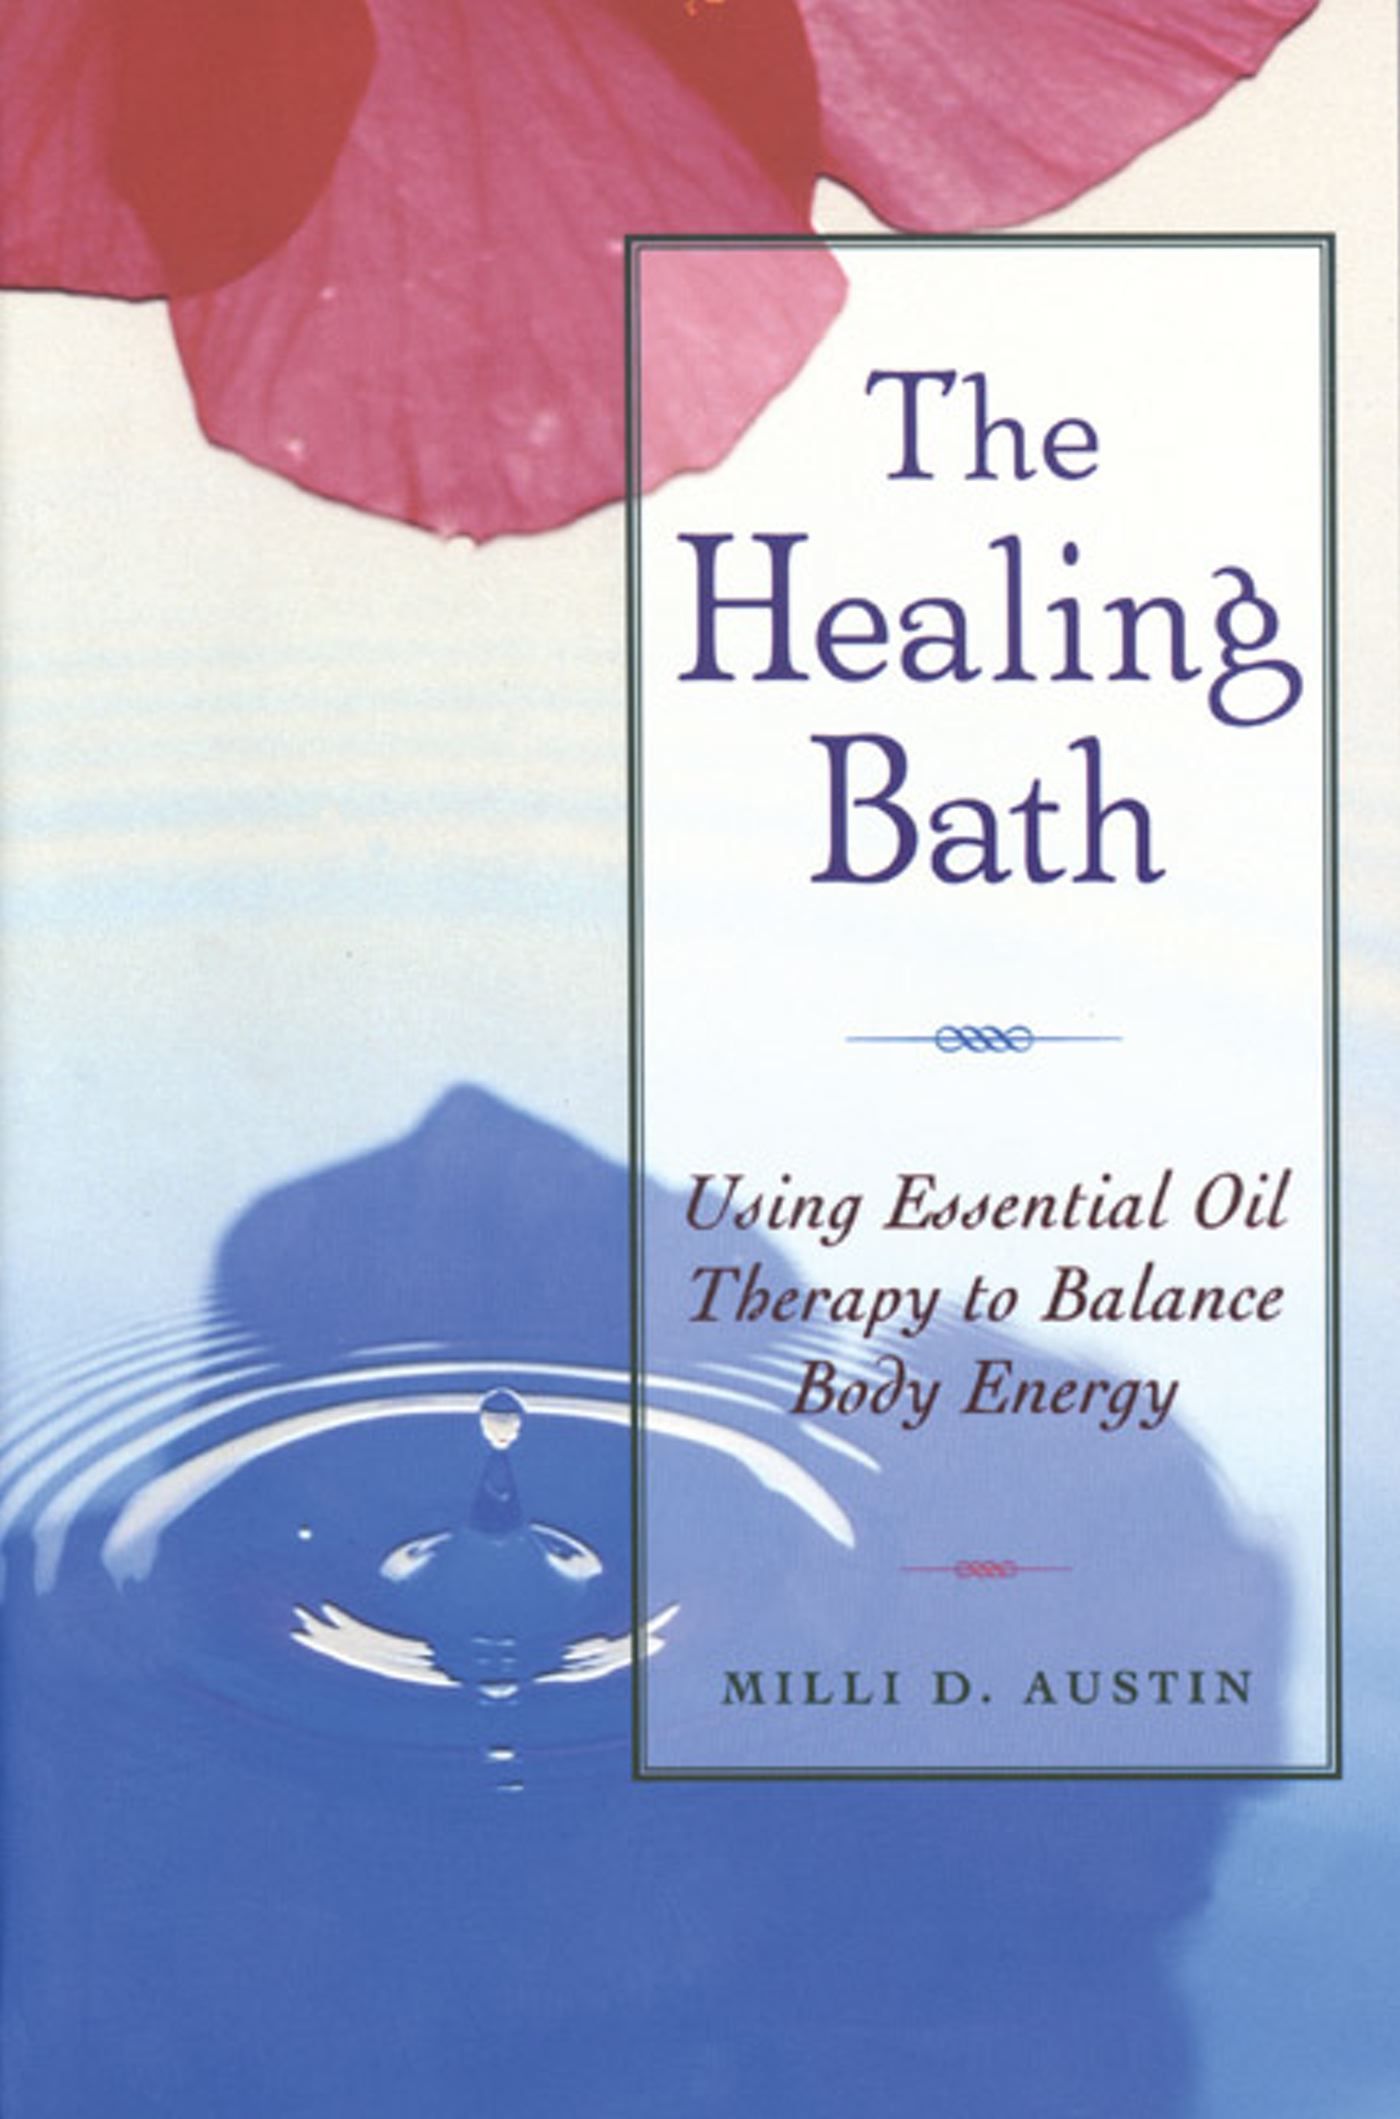 The Healing Bath | Book by Milli D. Austin | Official Publisher Page ...